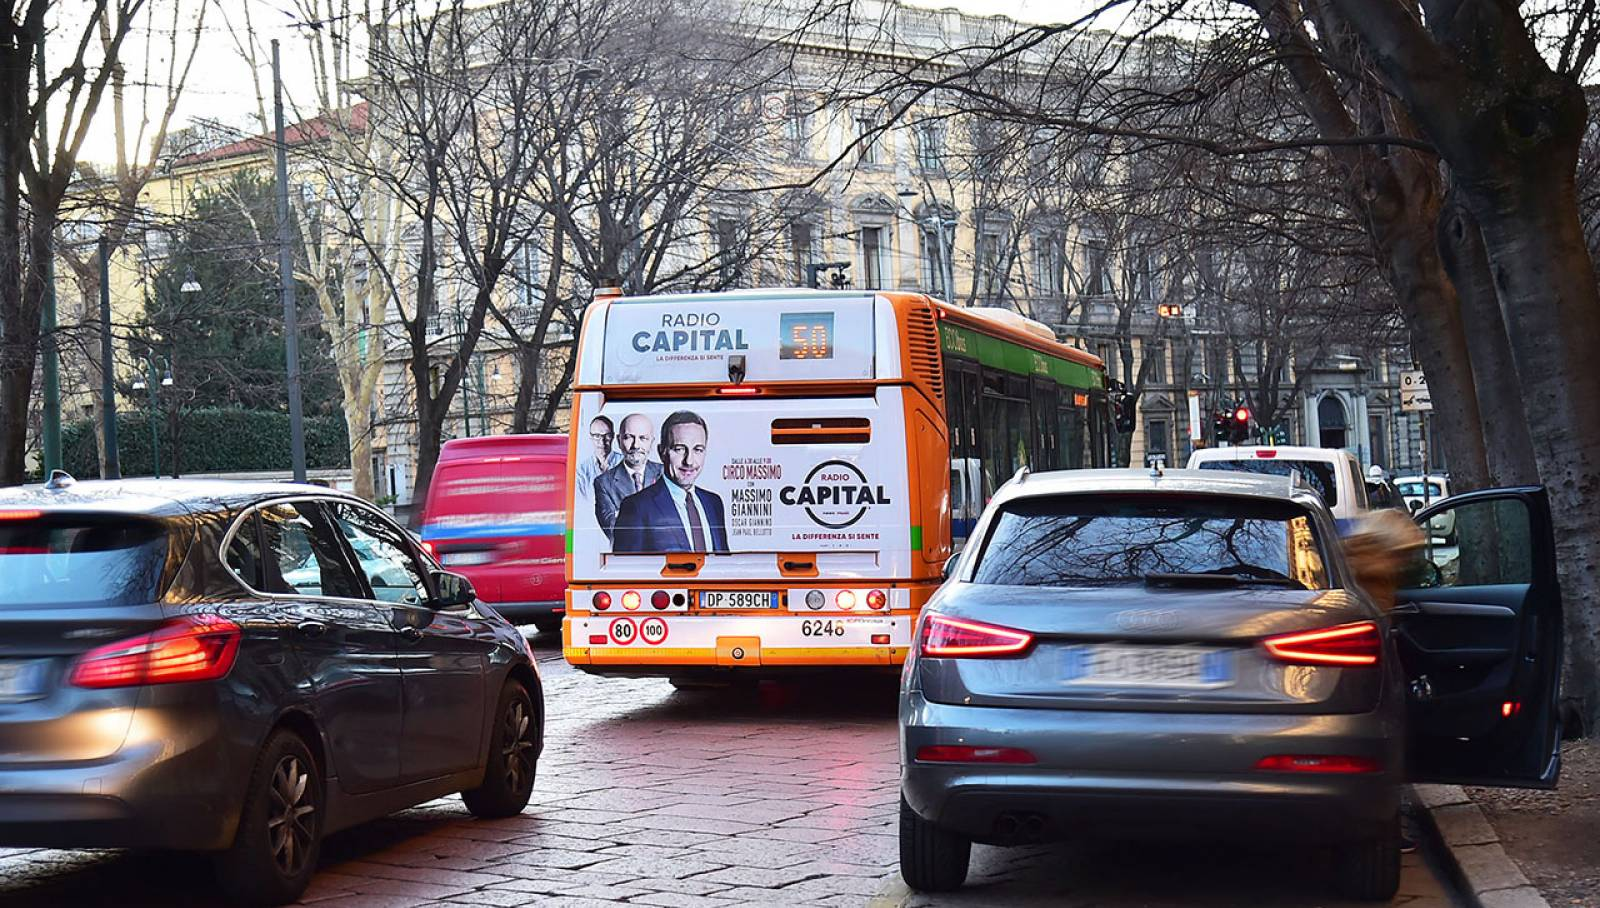 OOH advertising IGPDecaux in Milan Full-Back for Radio Capital